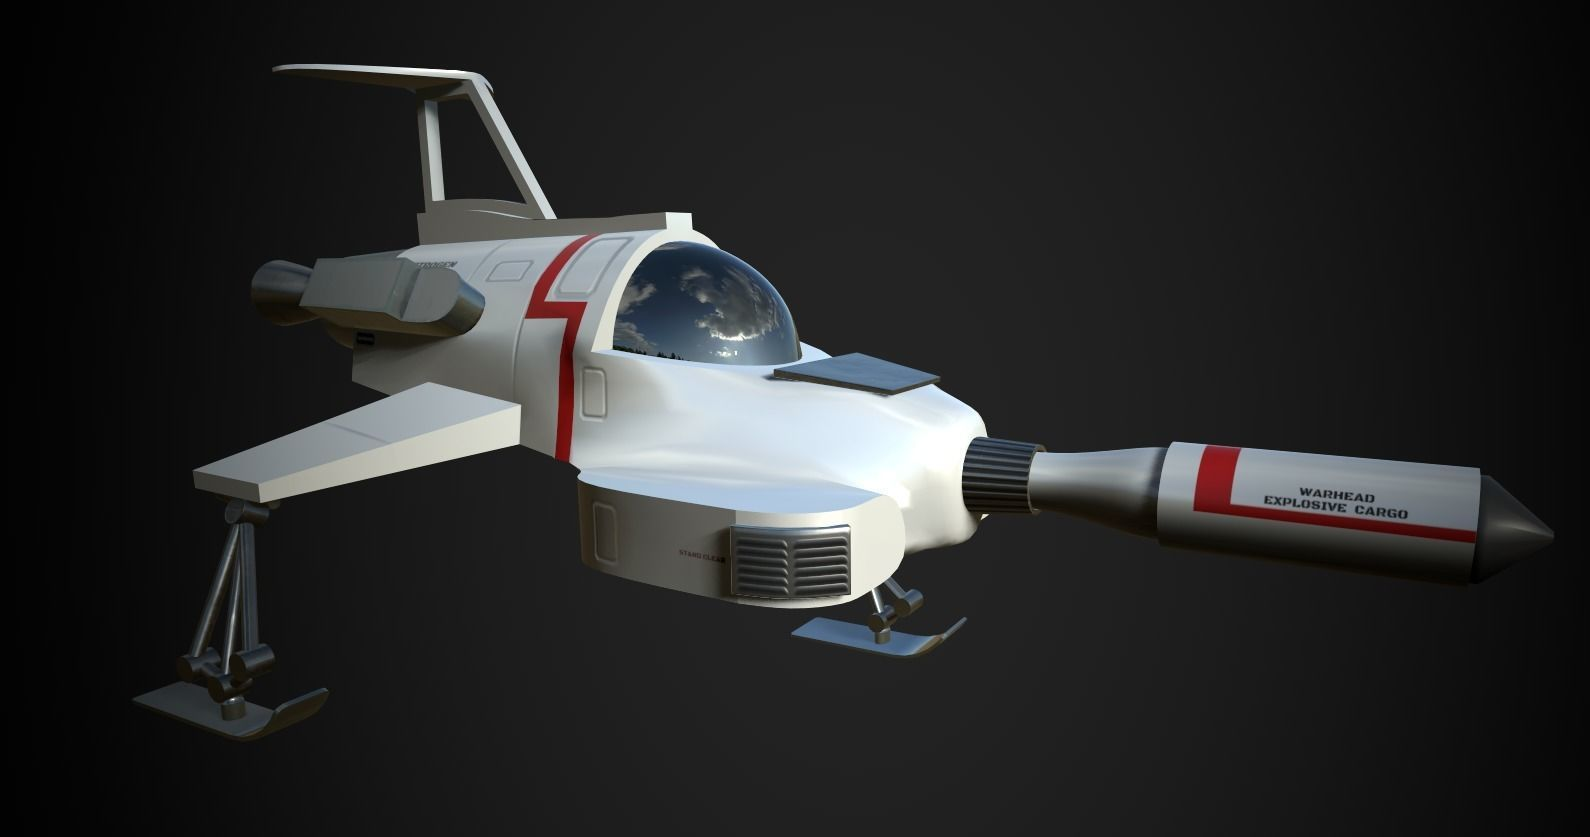 UFO Interceptor-stylised model from the TV show